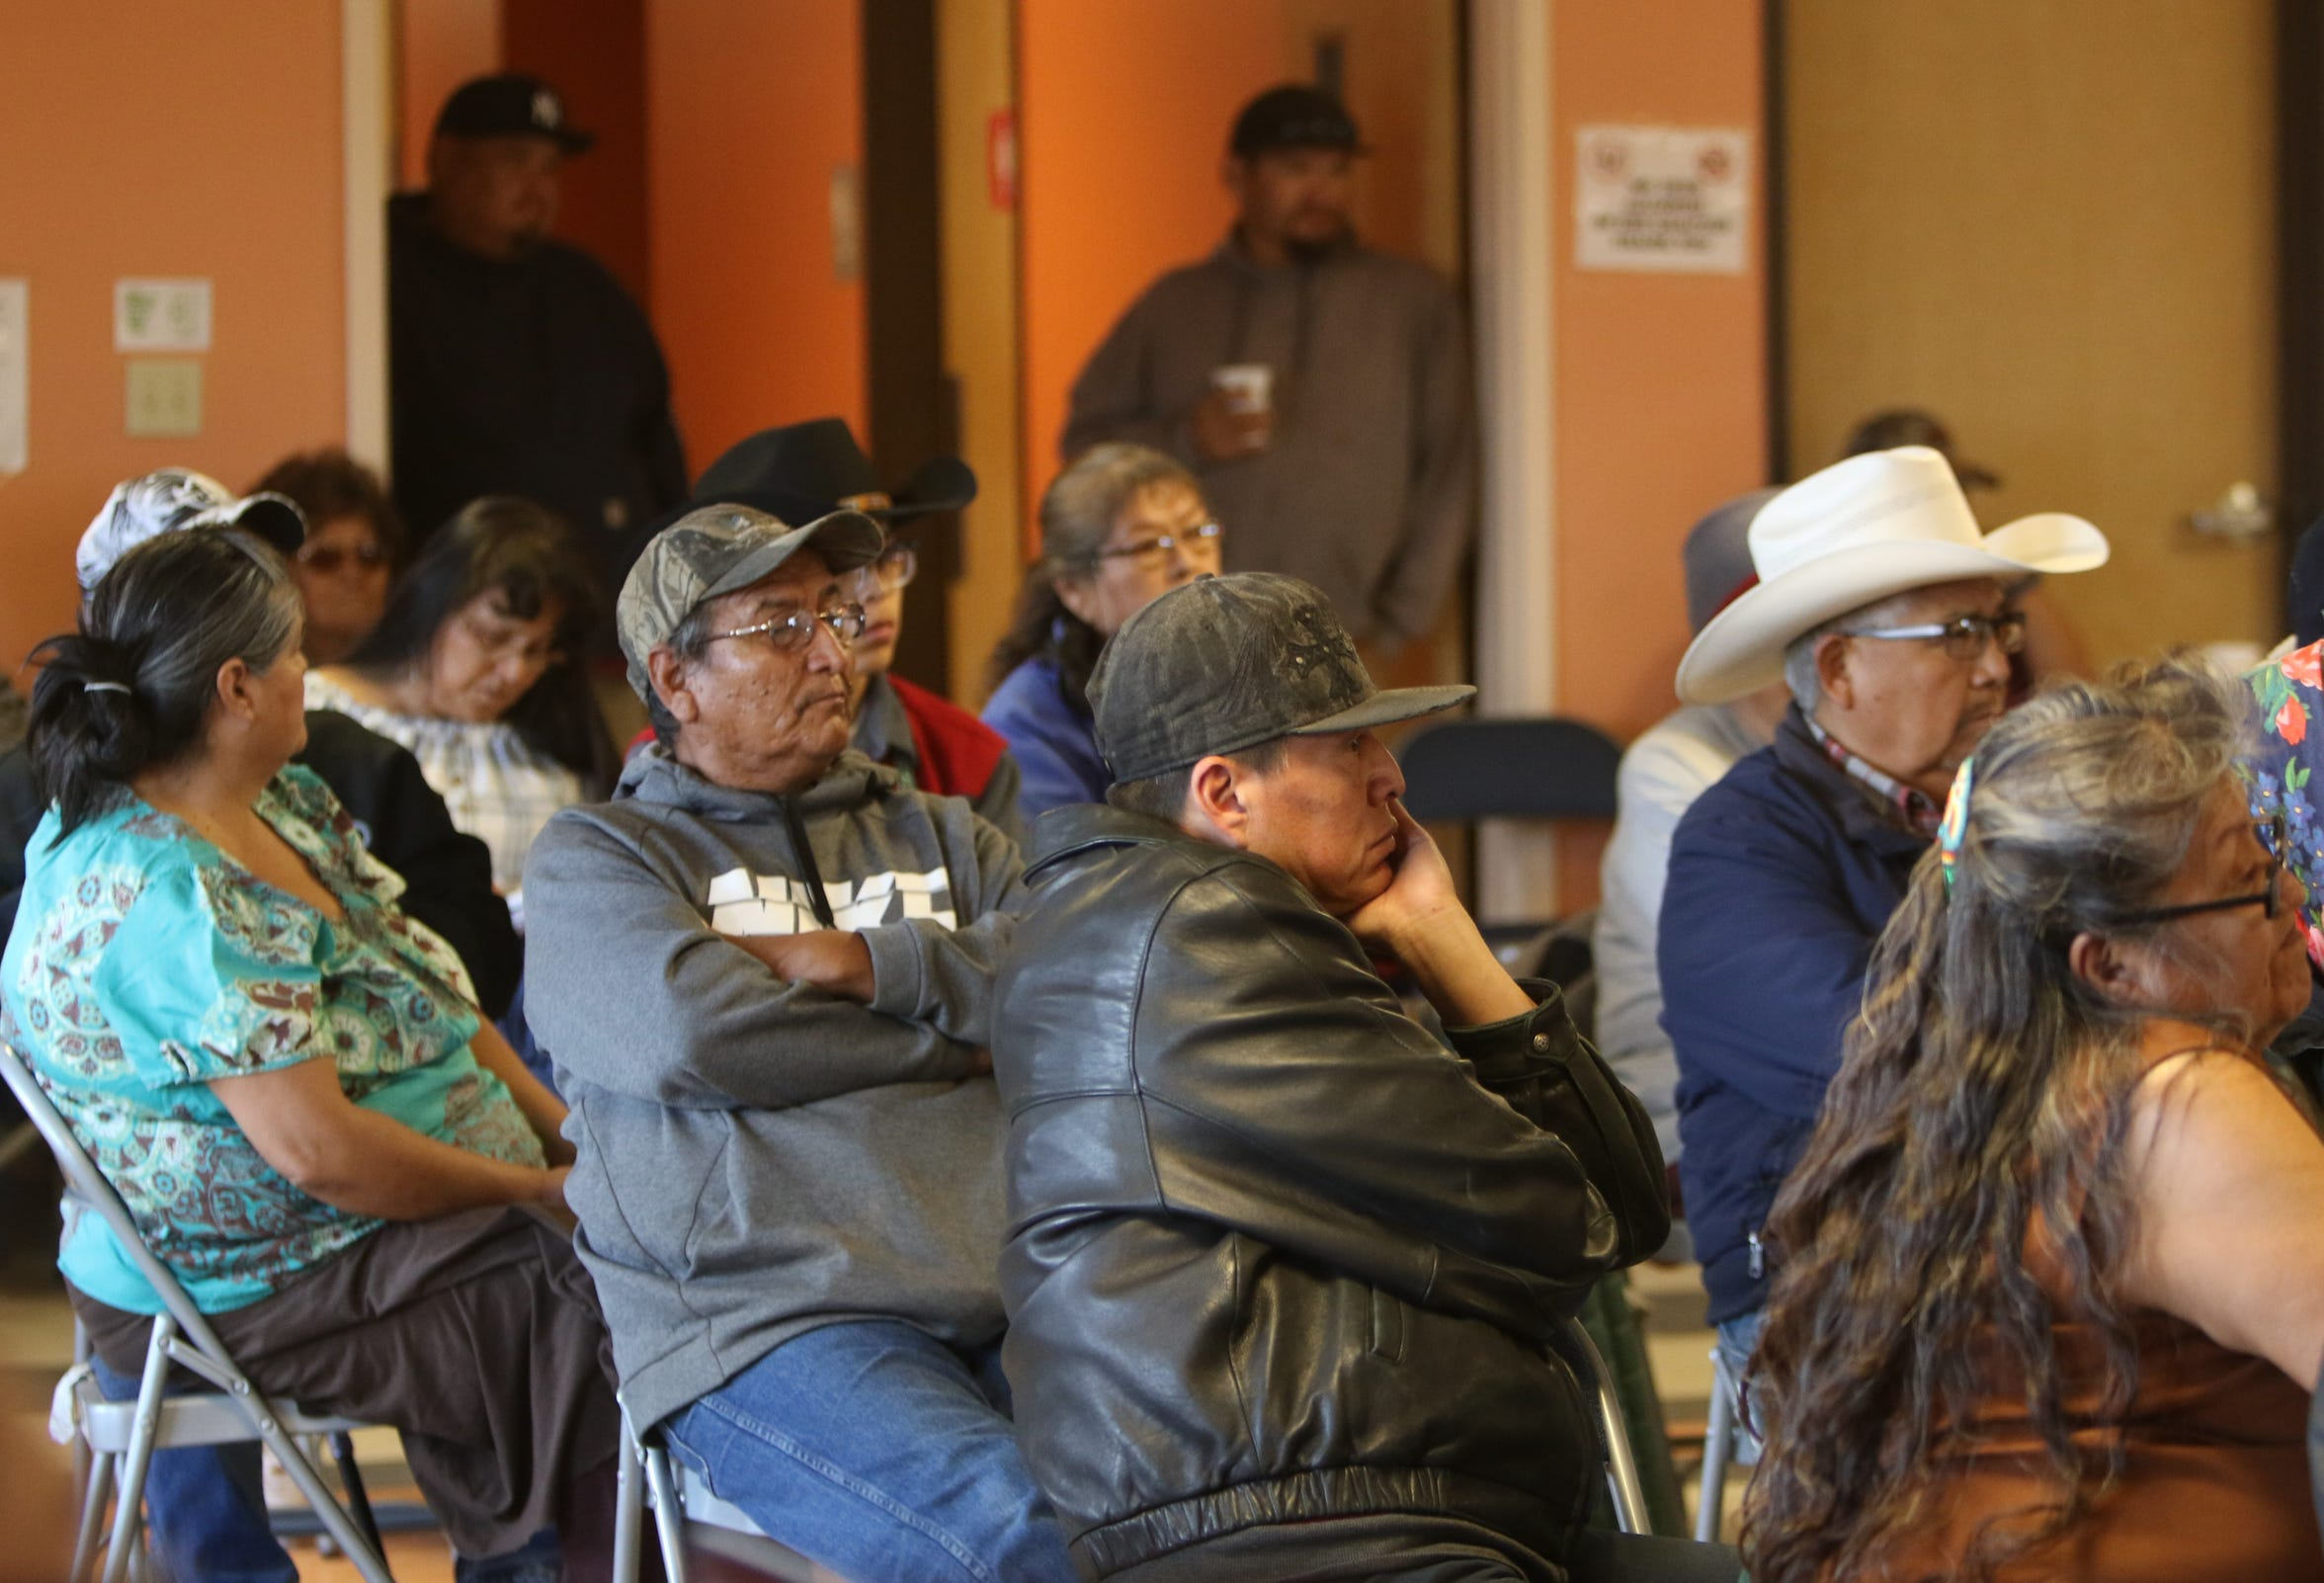 Community members listen to comments on Friday during the town hall meeting at the Hardrock Chapter house in Hardrock, Ariz.